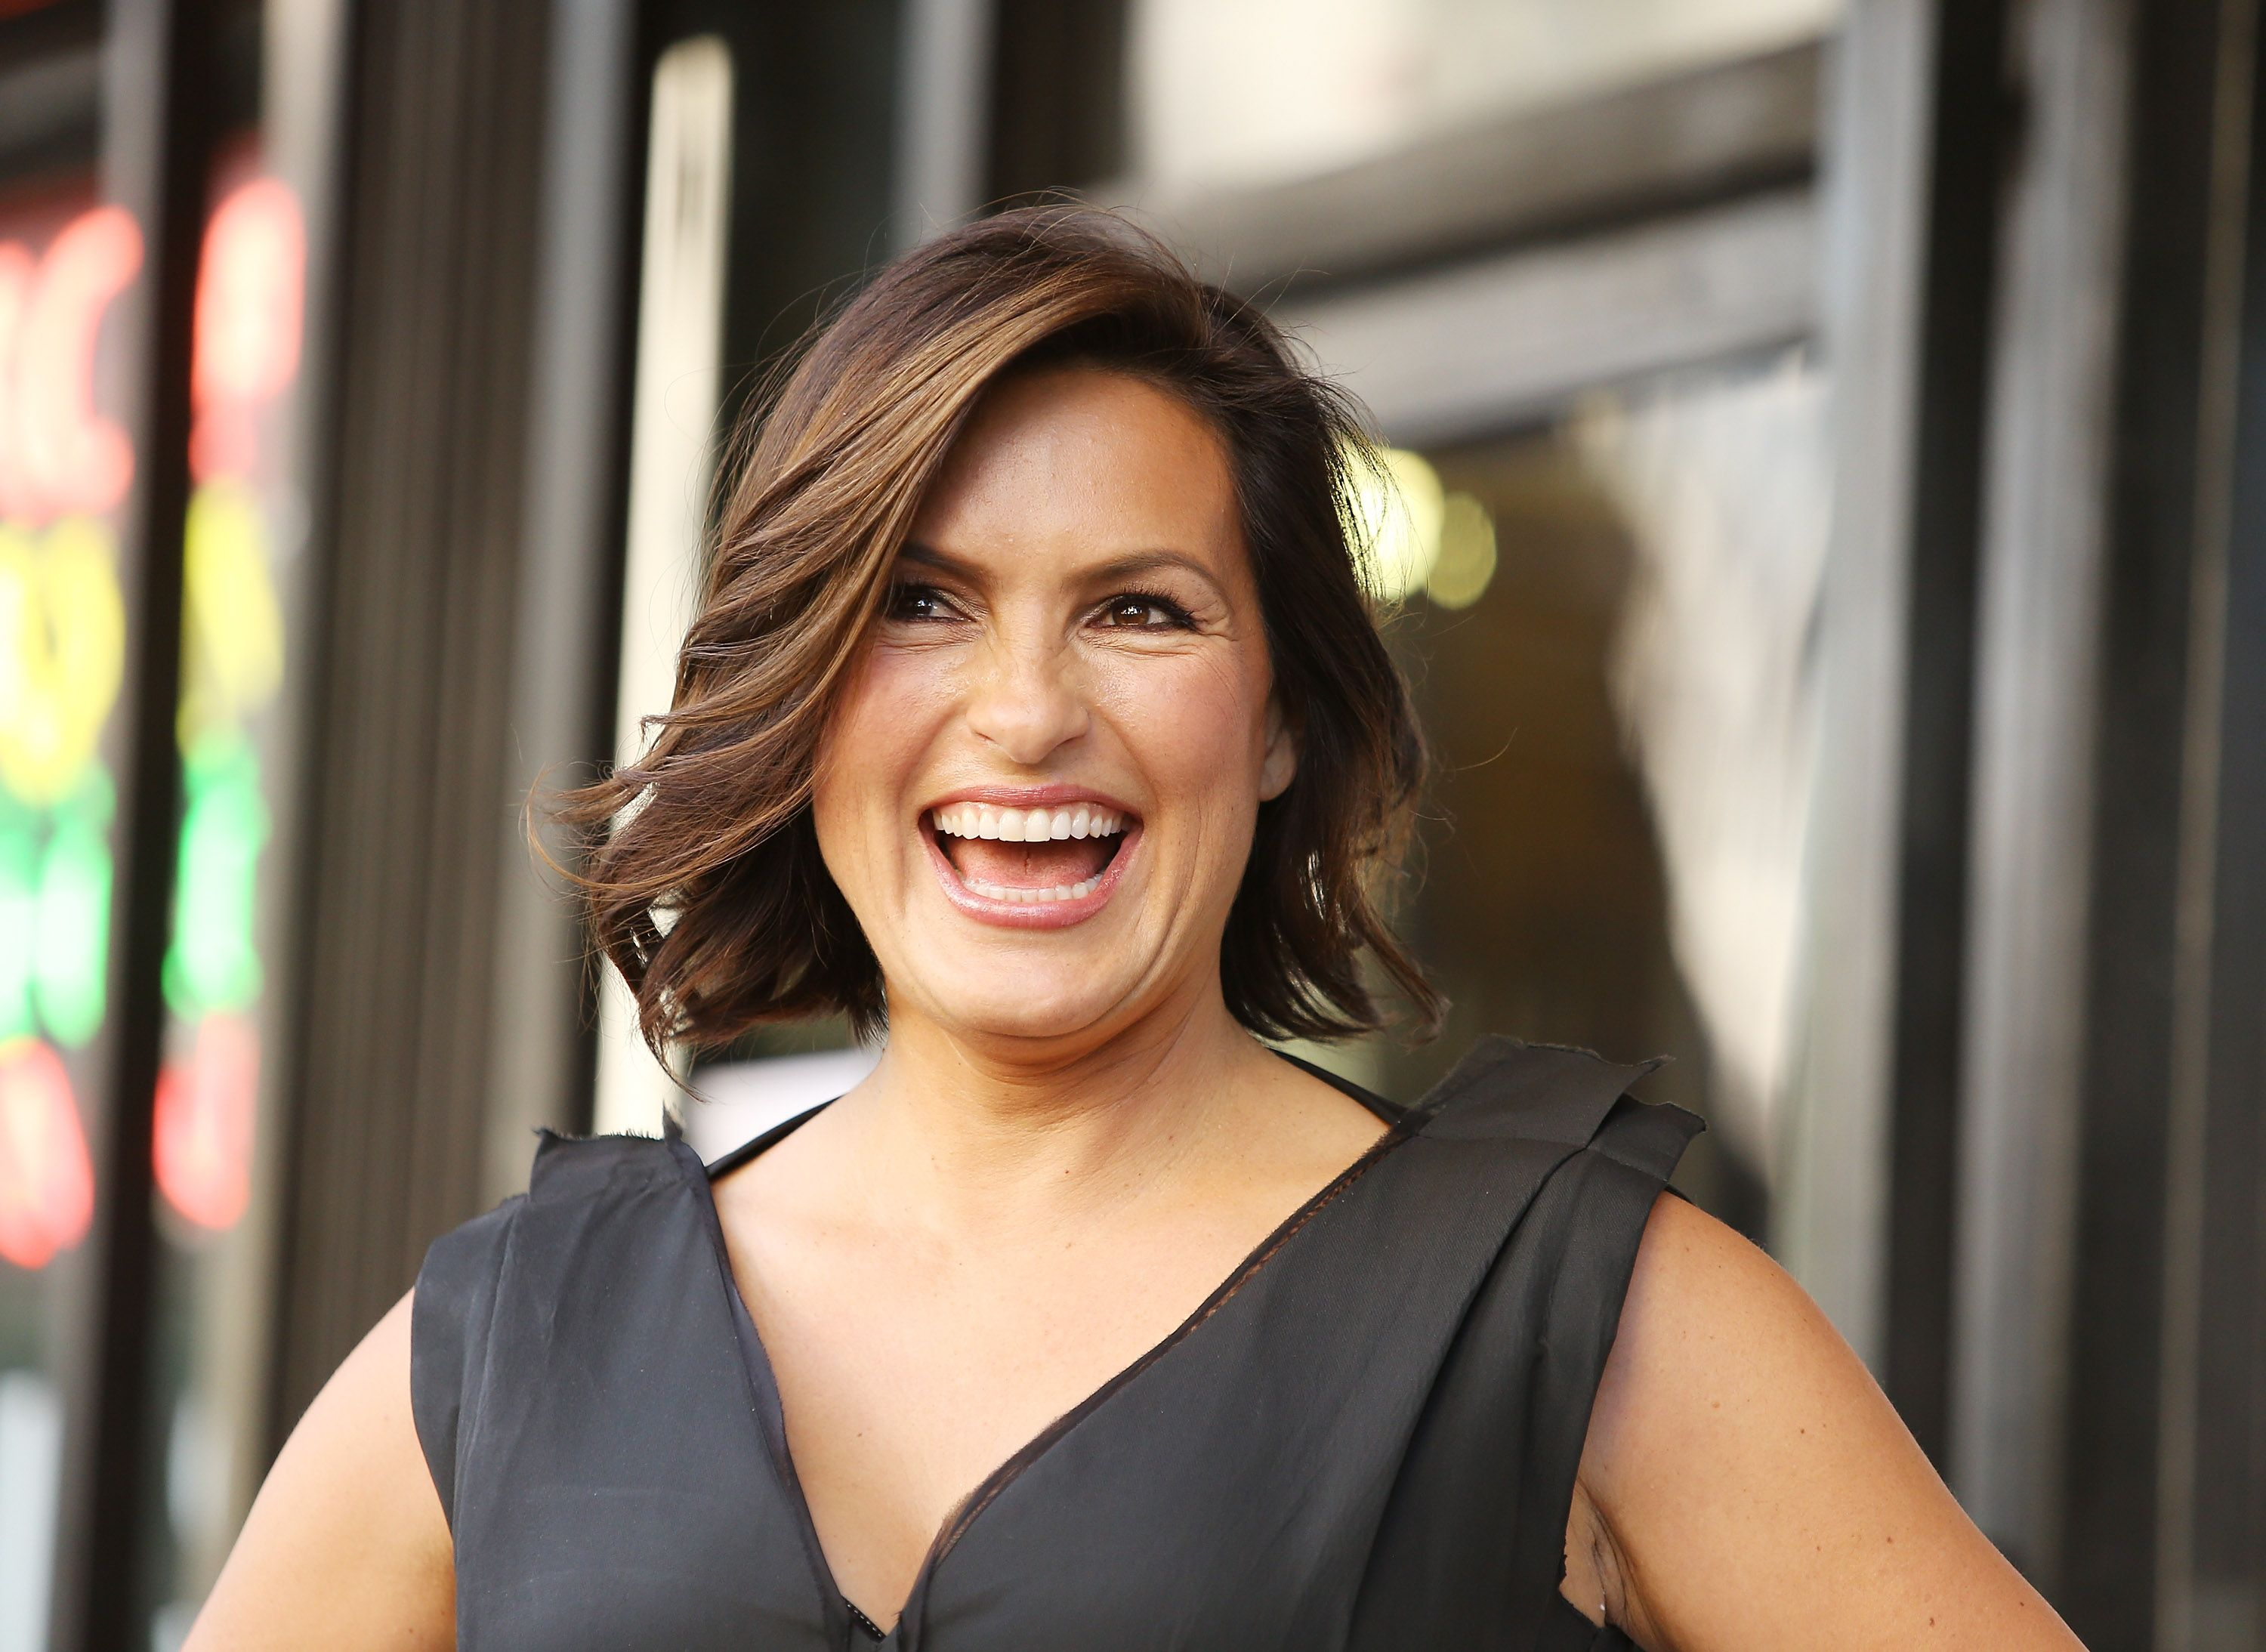 Mariska Hargitay attends the ceremony honoring her with a Star on The Hollywood Walk of Fame in 2013 | Source: Getty Images